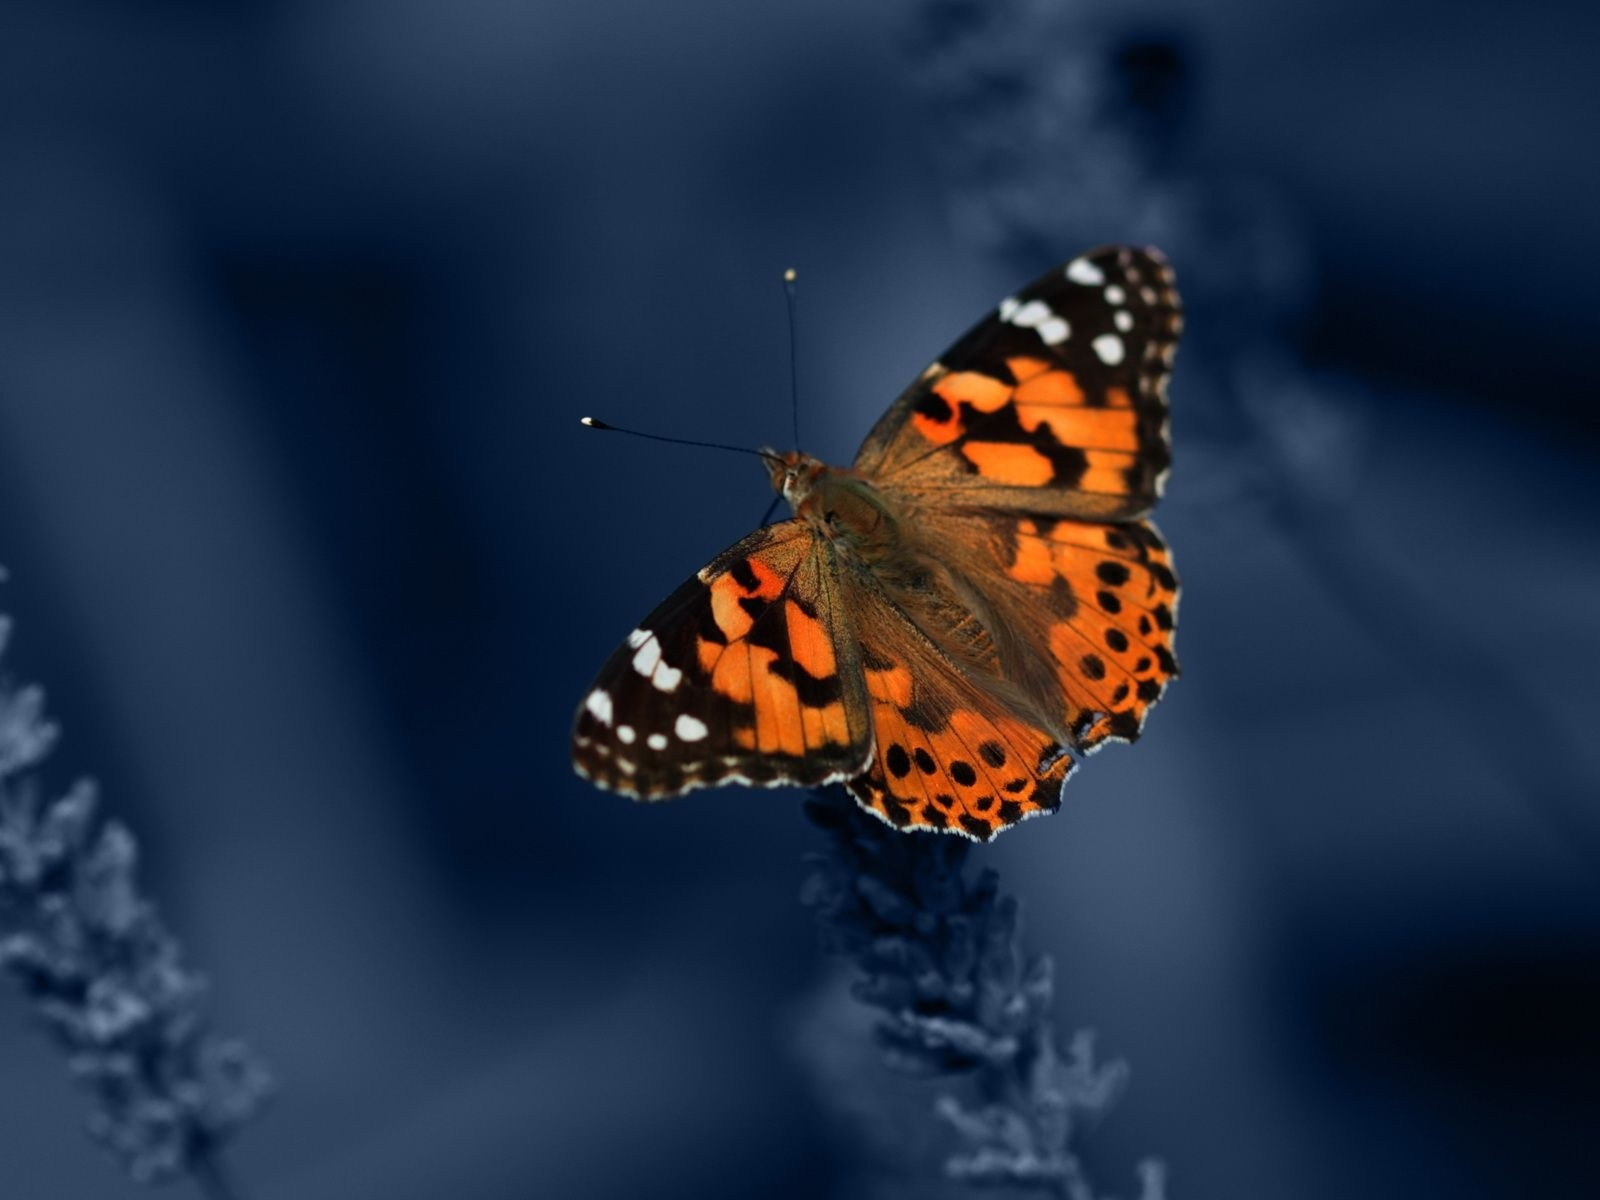 Orange Butterfly on Blue Background   Wallpaper 41836 1600x1200